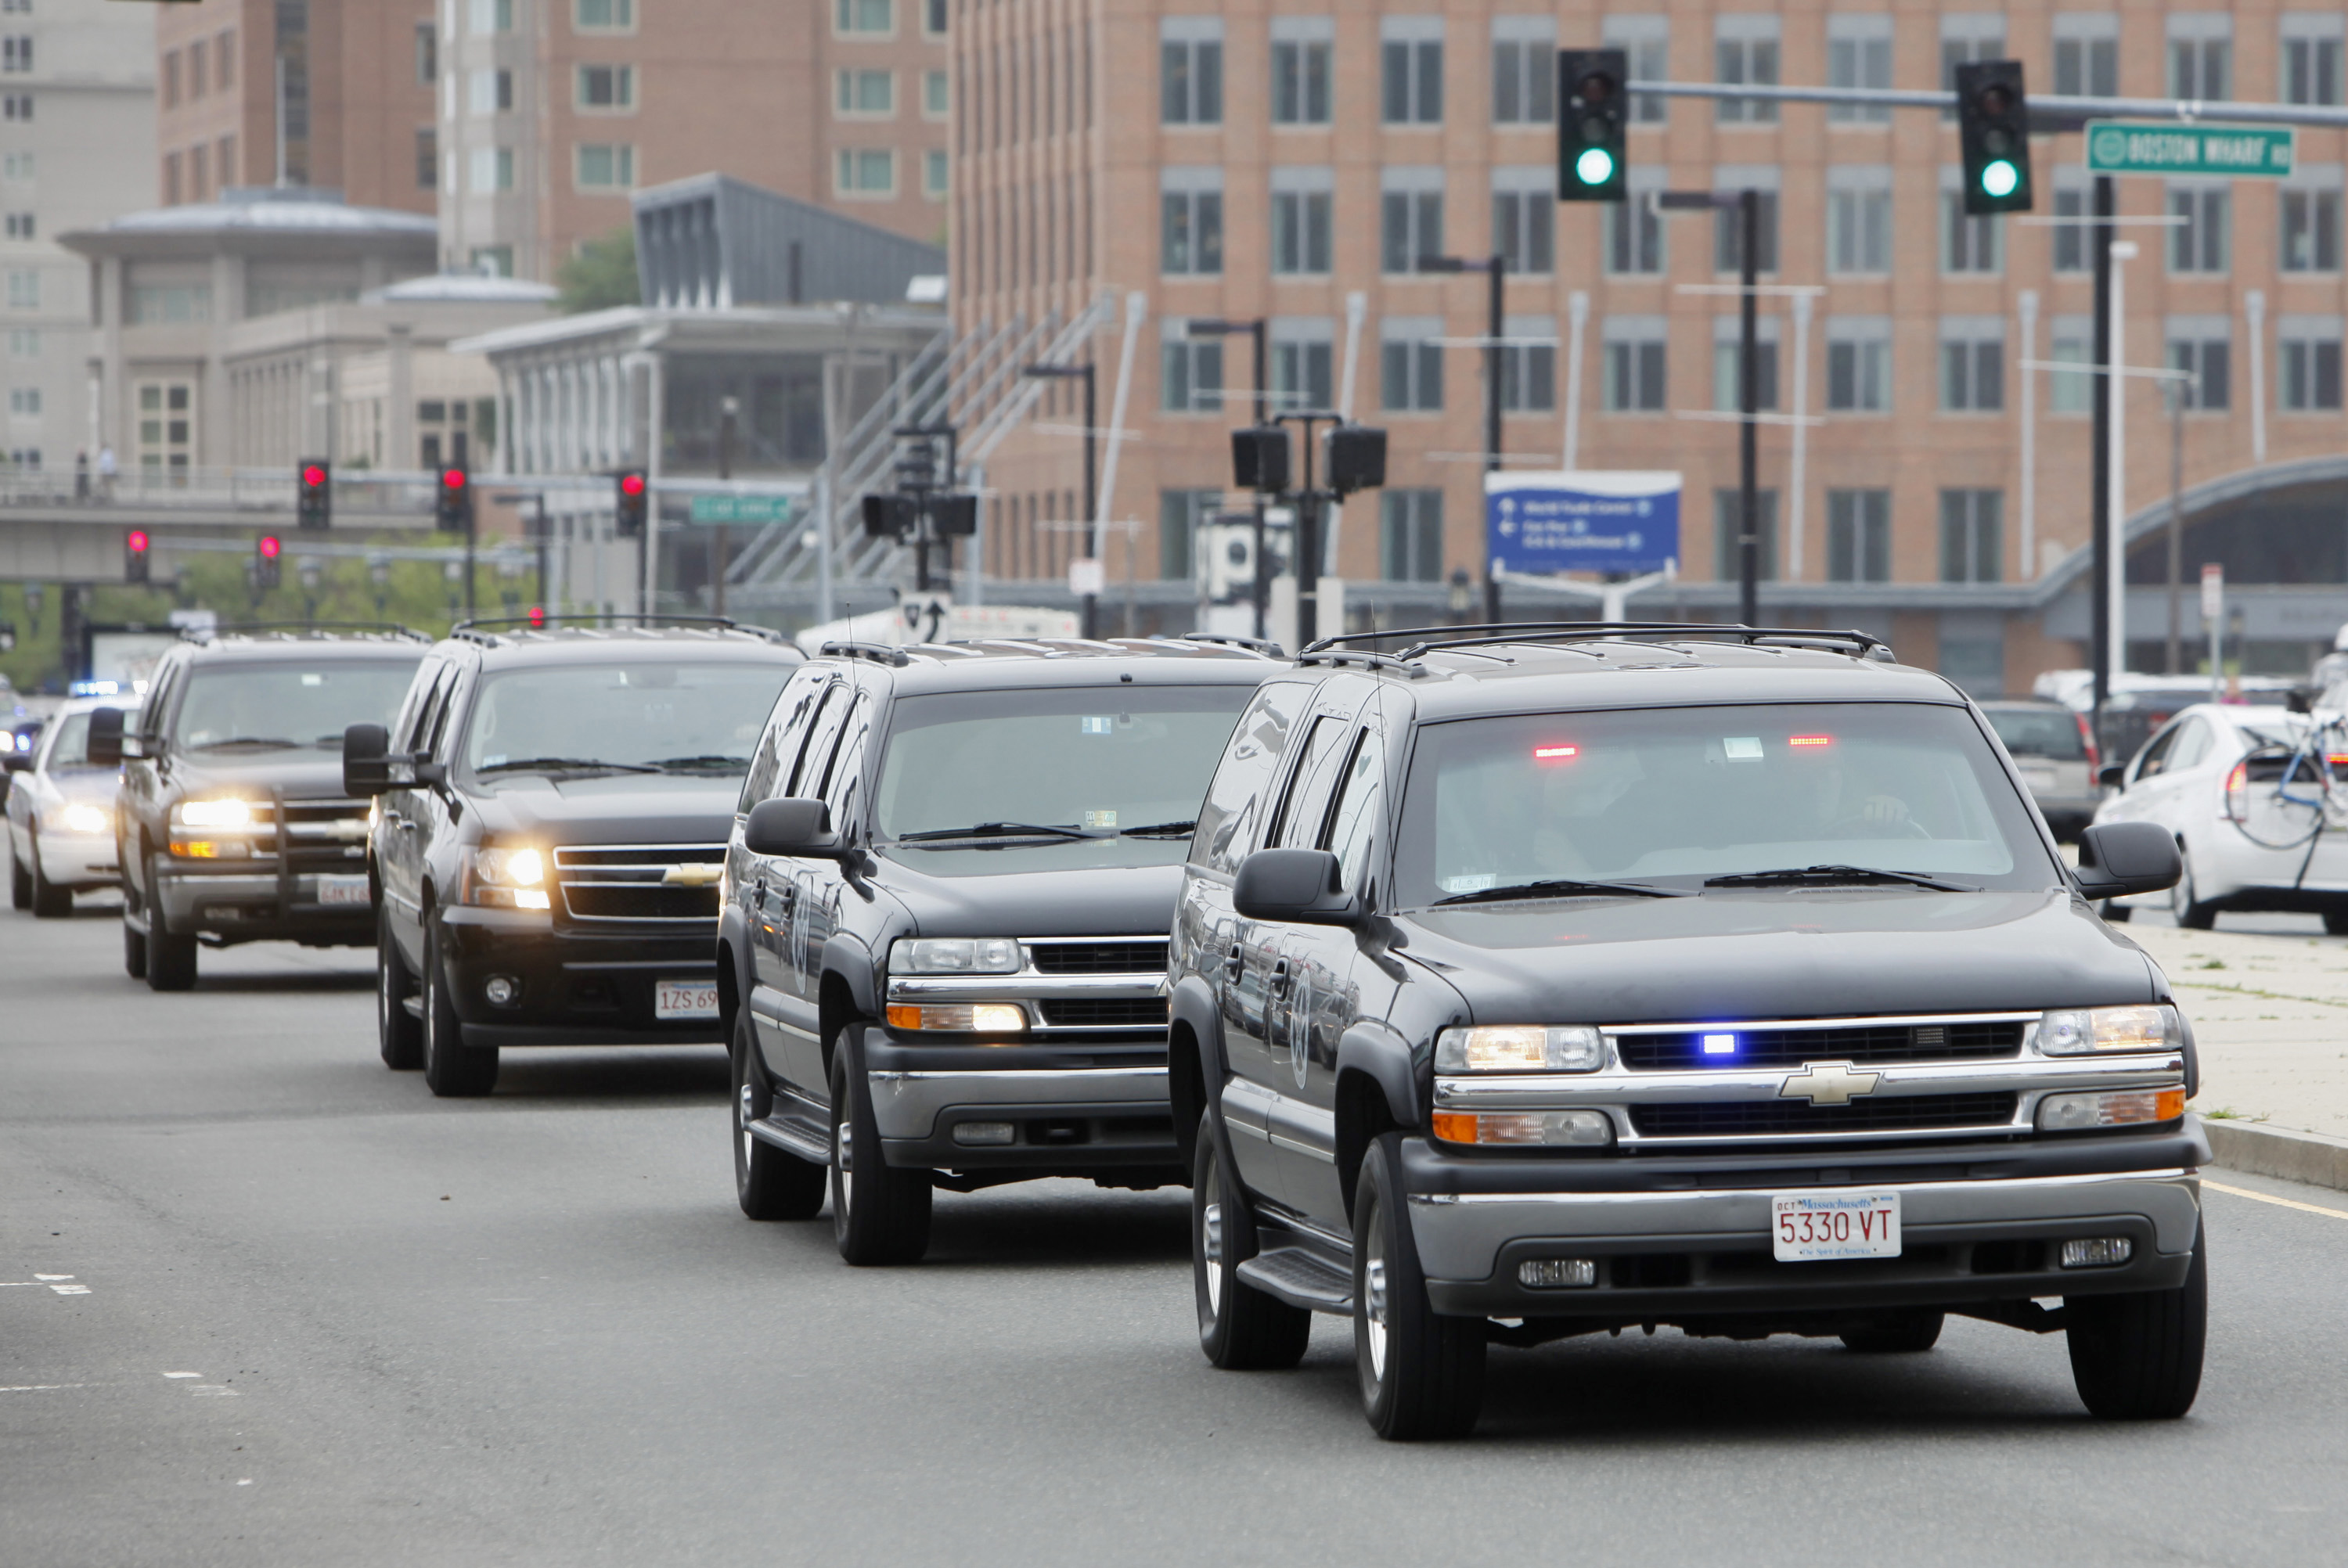 """A motorcade transports James """"Whitey"""" Bulger and federal officials through South Boston, Massachusetts June 24, 2011. Former mob boss James """"Whitey"""" Bulger, captured near his coastal California hideout after 16 years on the run, was ordered held without bond on Thursday for transfer back to Boston to face charges of murder, extortion and conspiracy. Bulger, 81, one of America's most wanted fugitives, was lured from his Santa Monica, California, apartment just blocks from the Pacific on Wednesday evening by federal agents and police acting on a tip from the public. REUTERS/Greg M Cooper"""